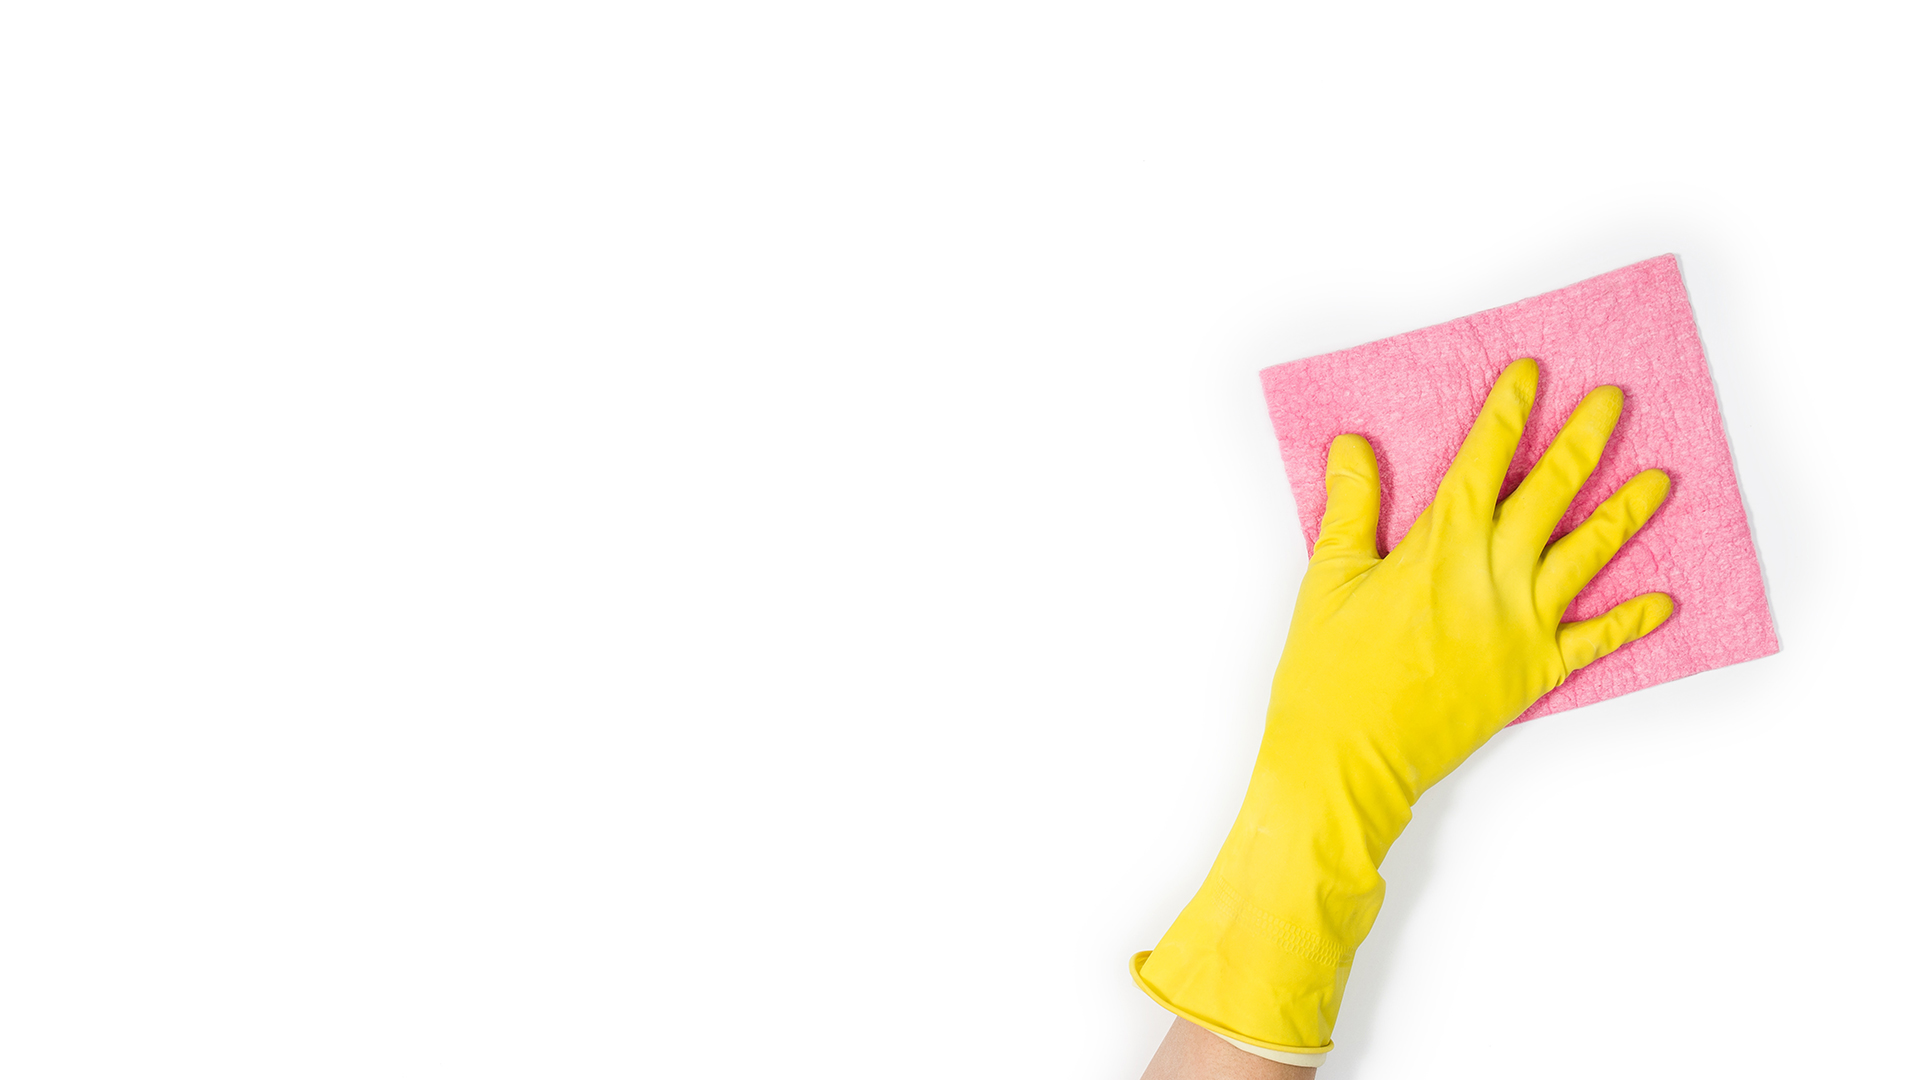 Isolated woman's hand cleaning on a white-background